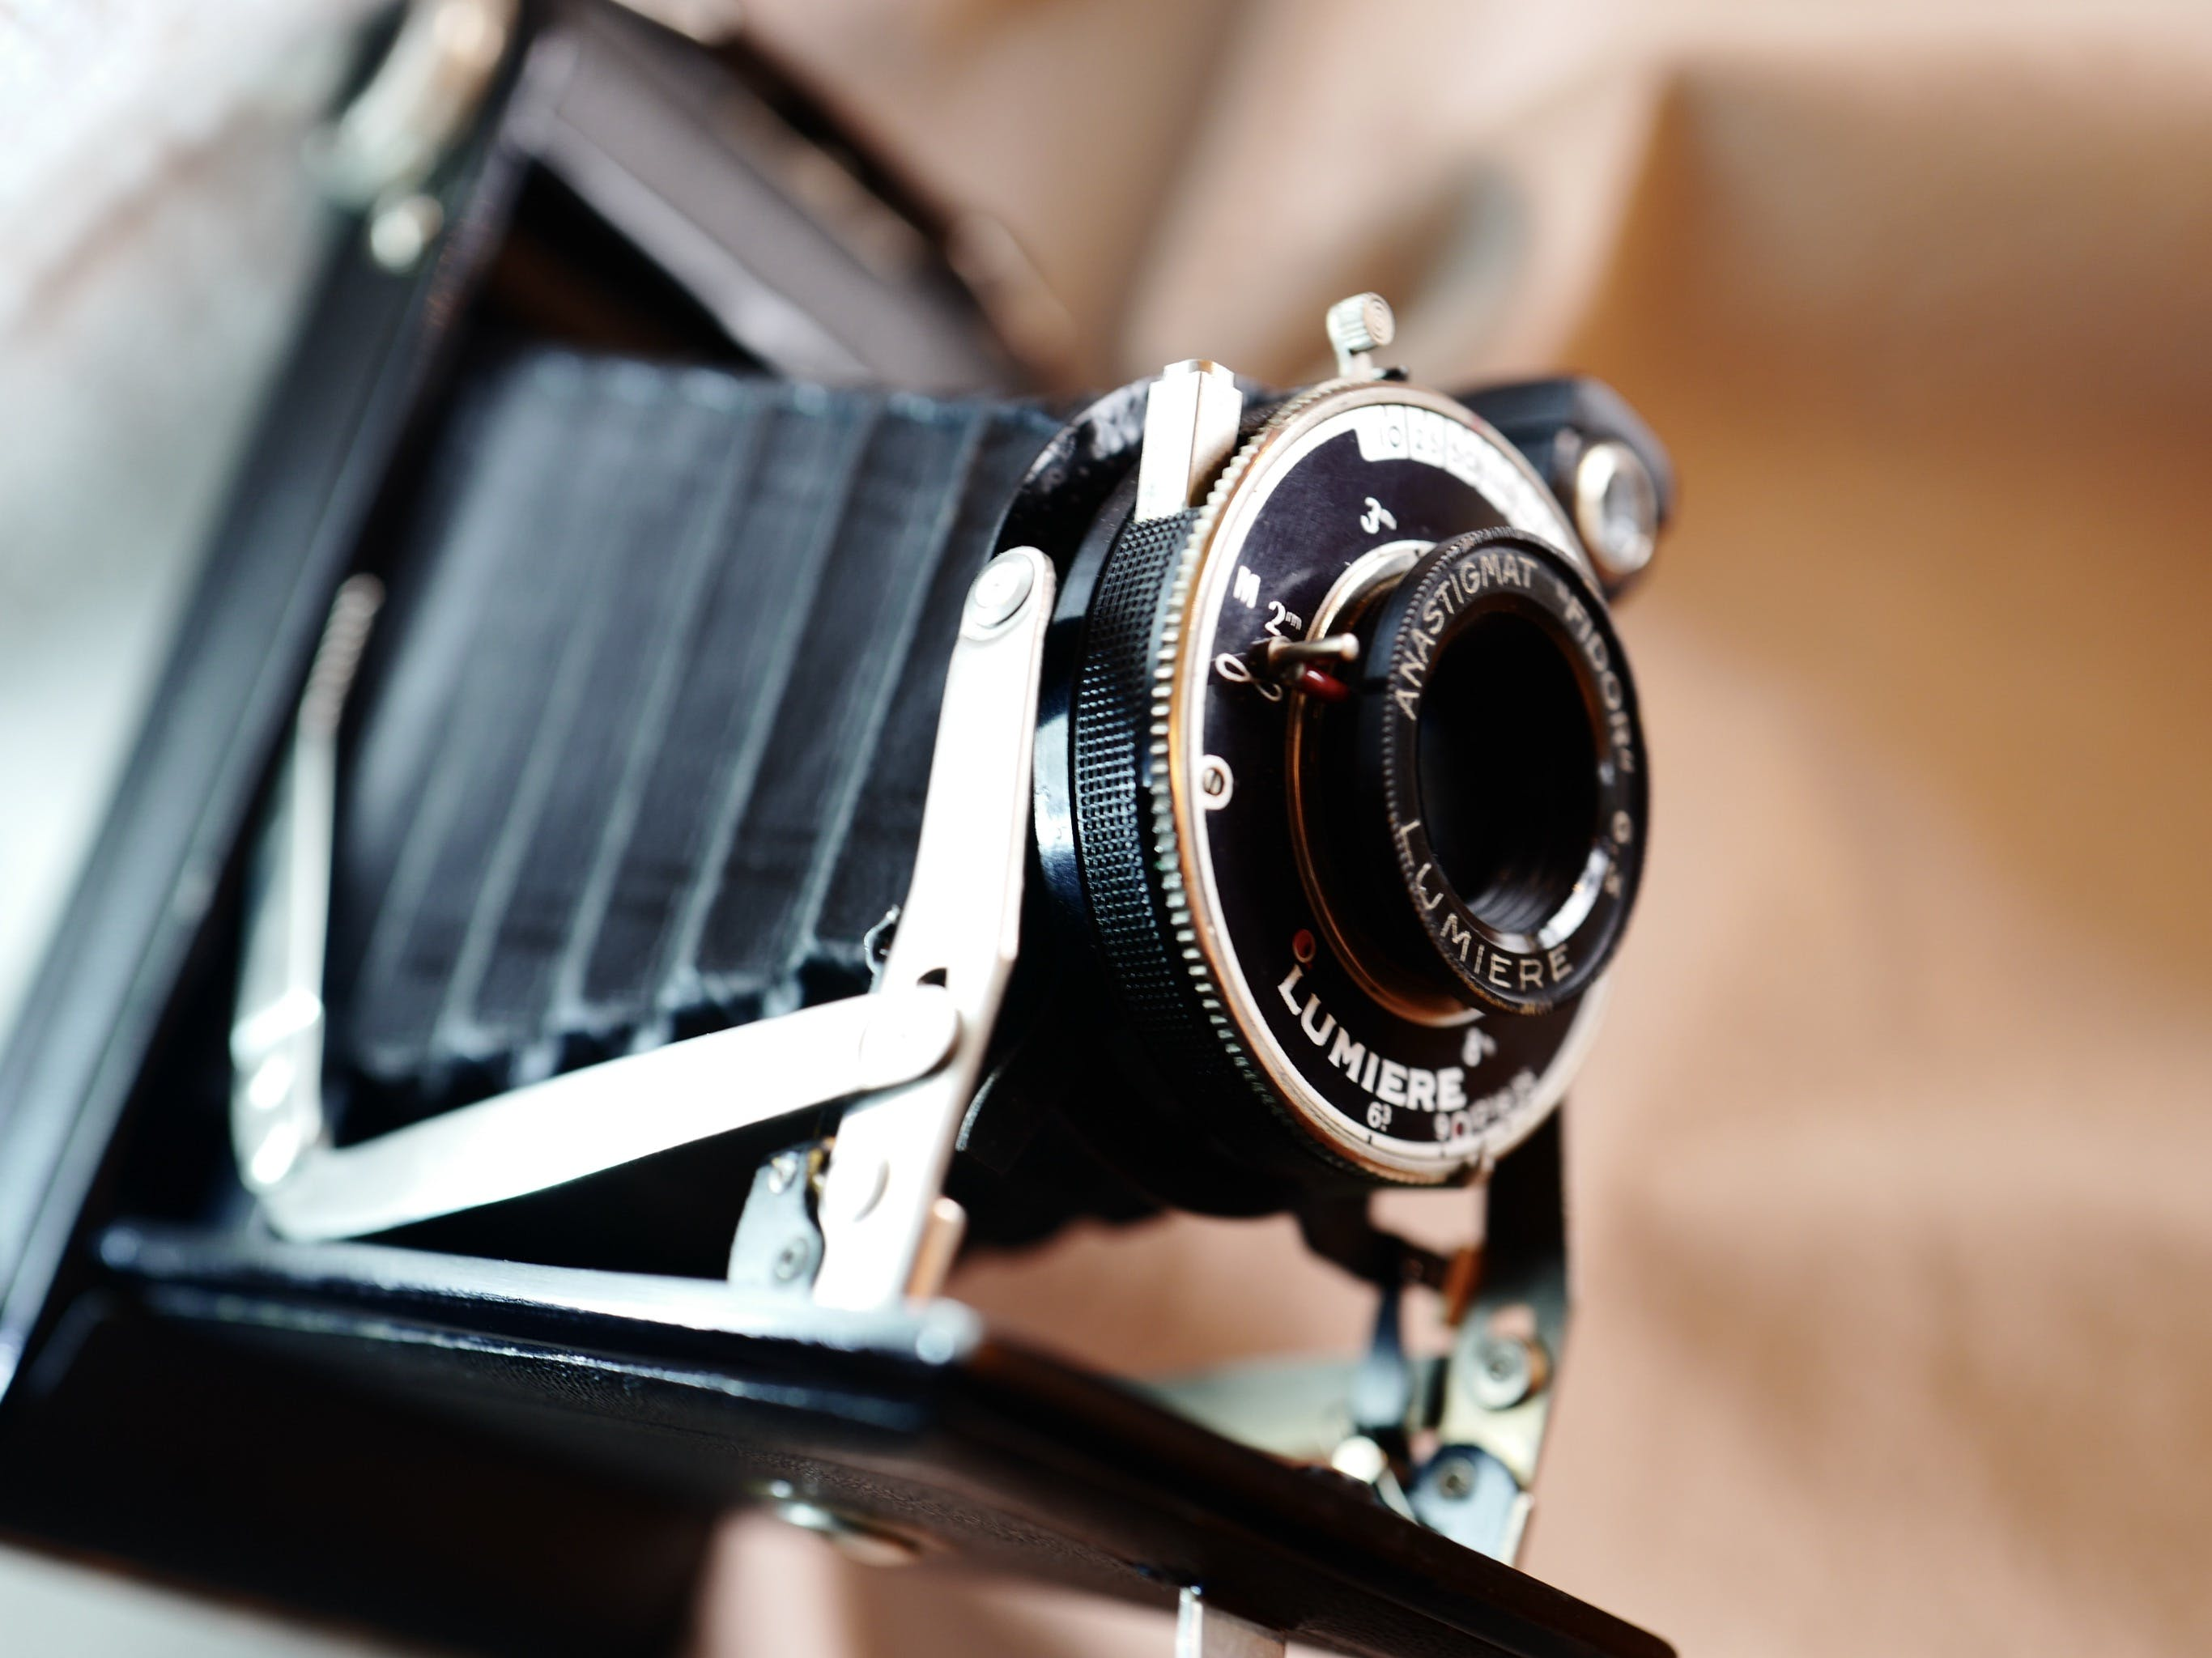 Free stock photo of old camera